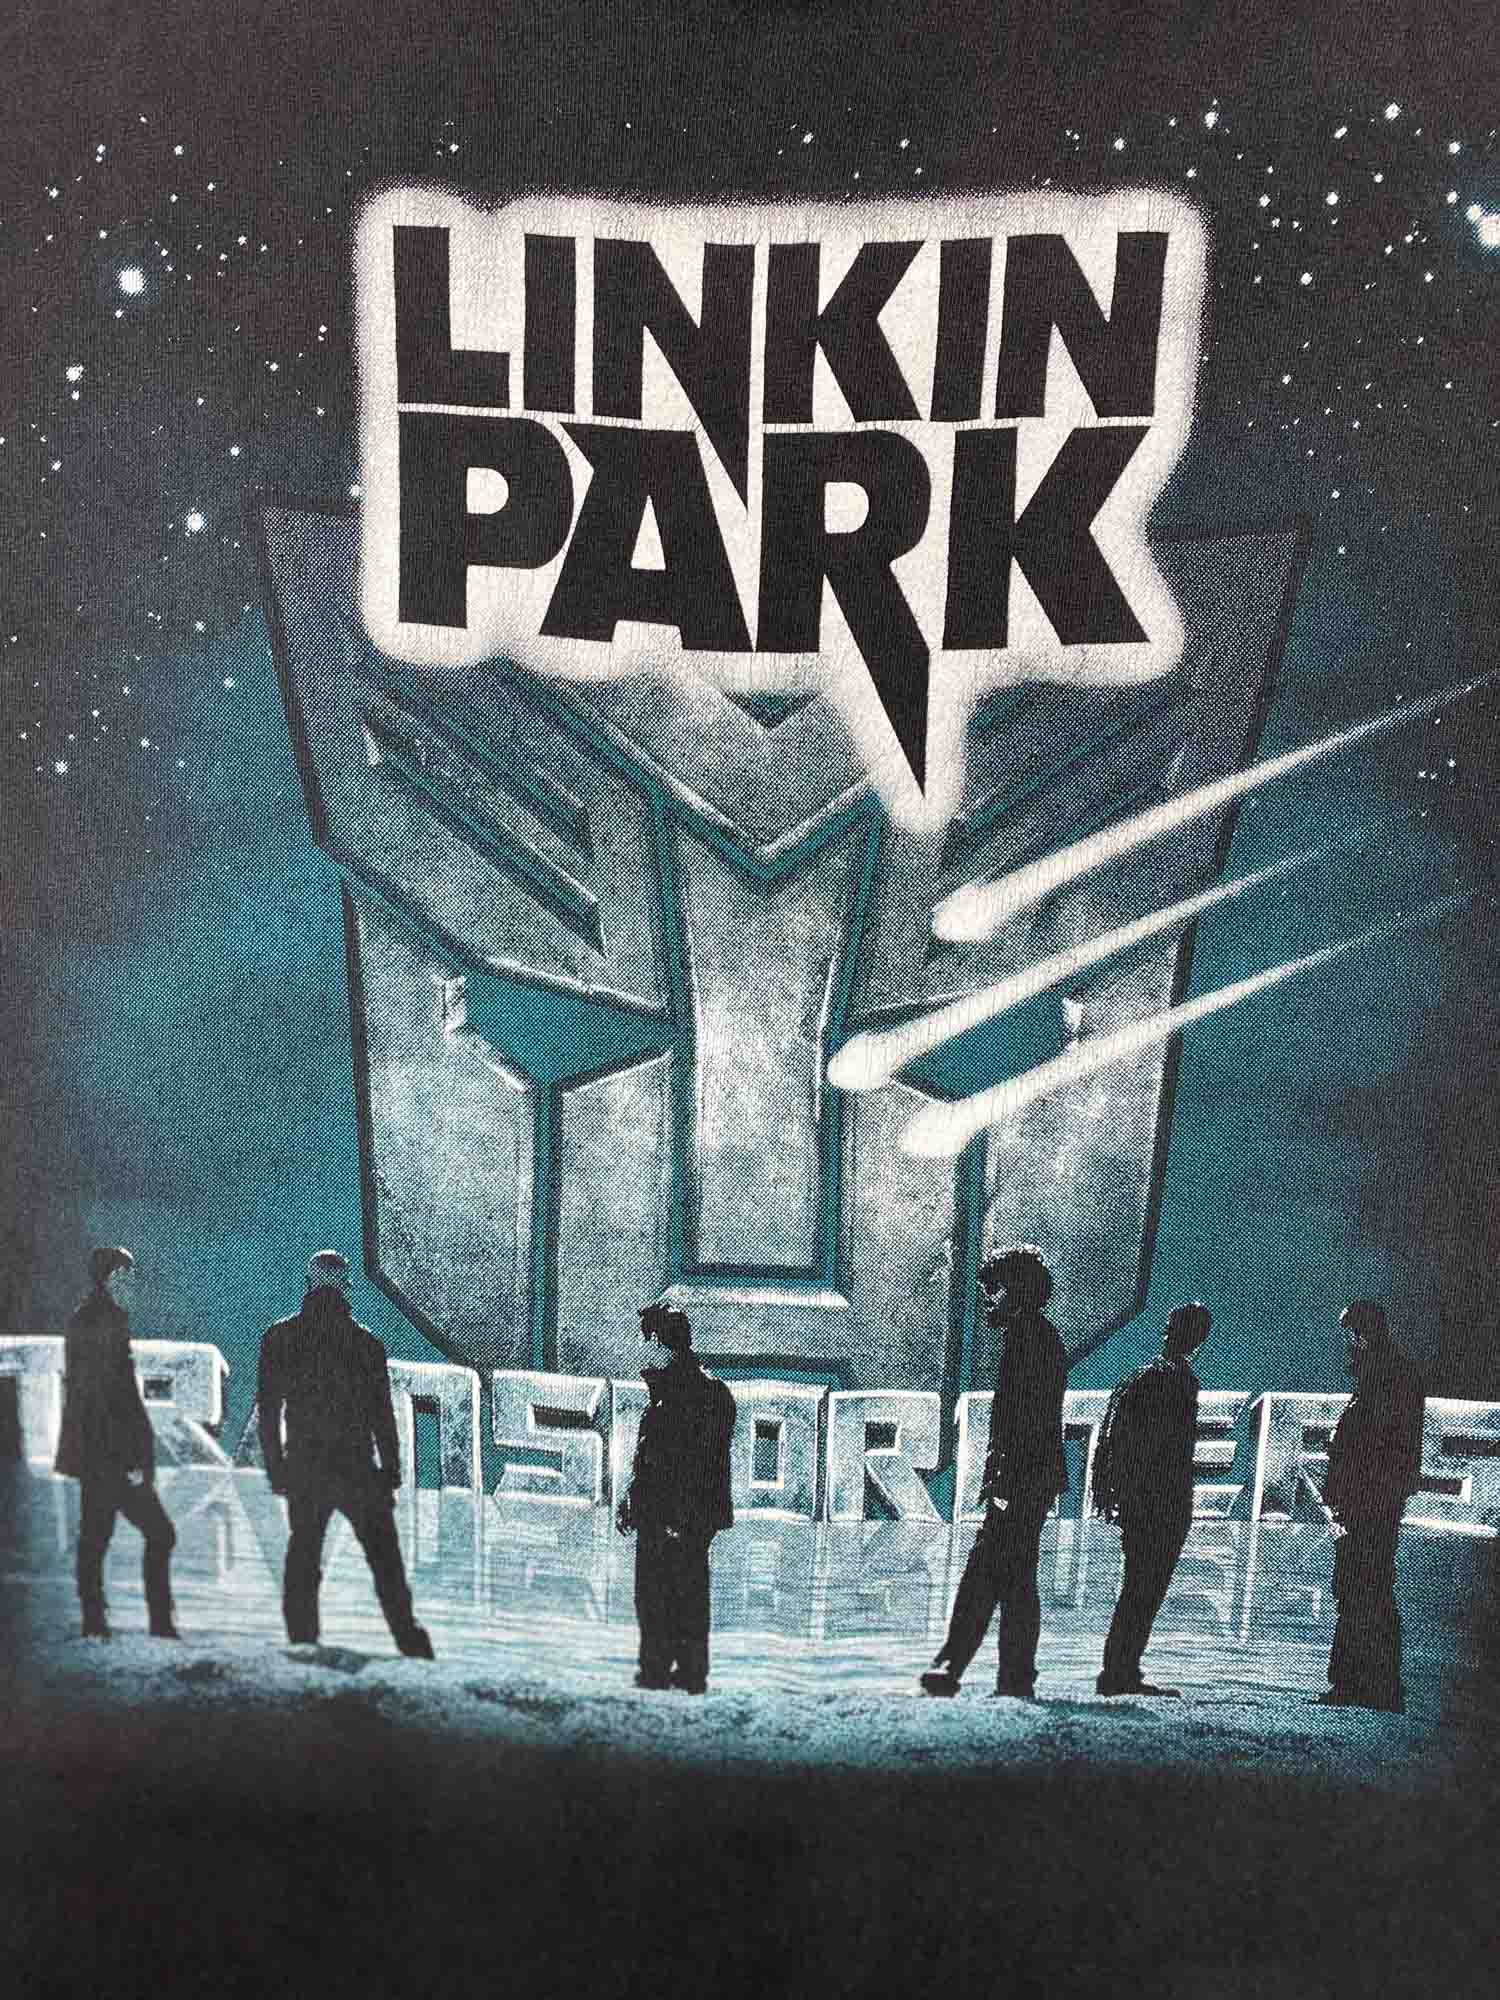 Vintage Linkin Park Band tee